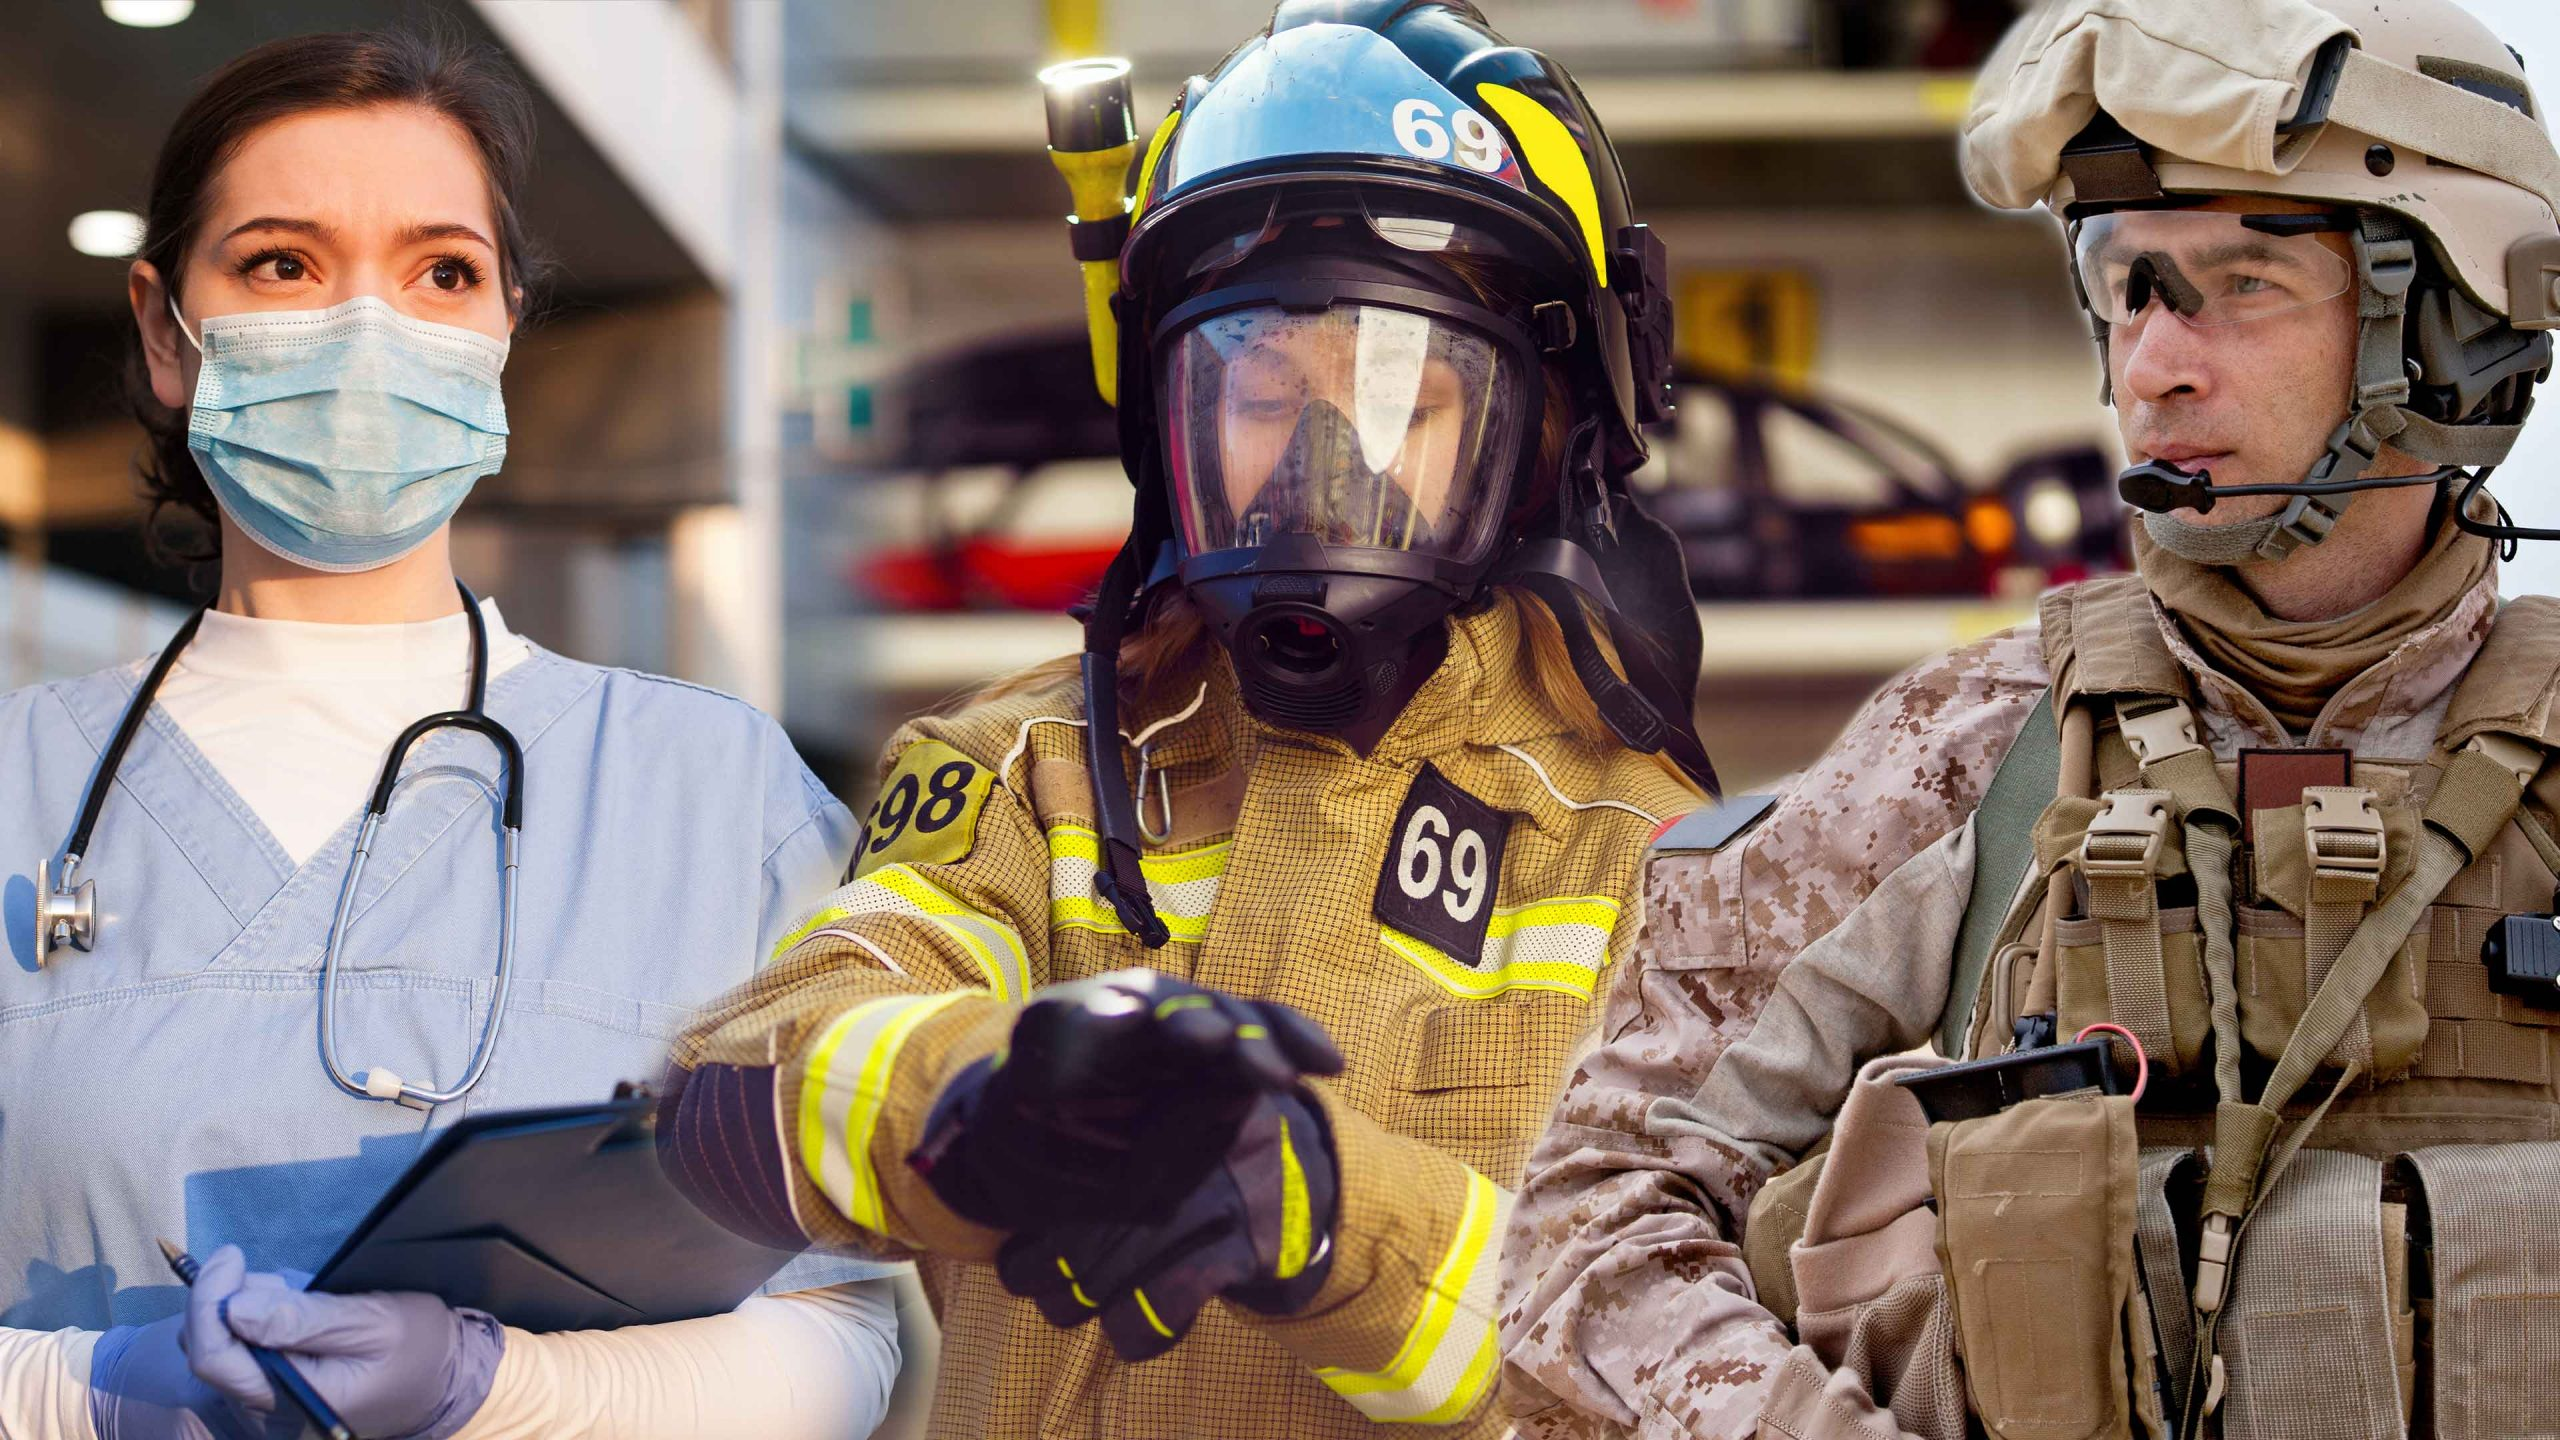 Nurse, Firefighter, and Military soldier